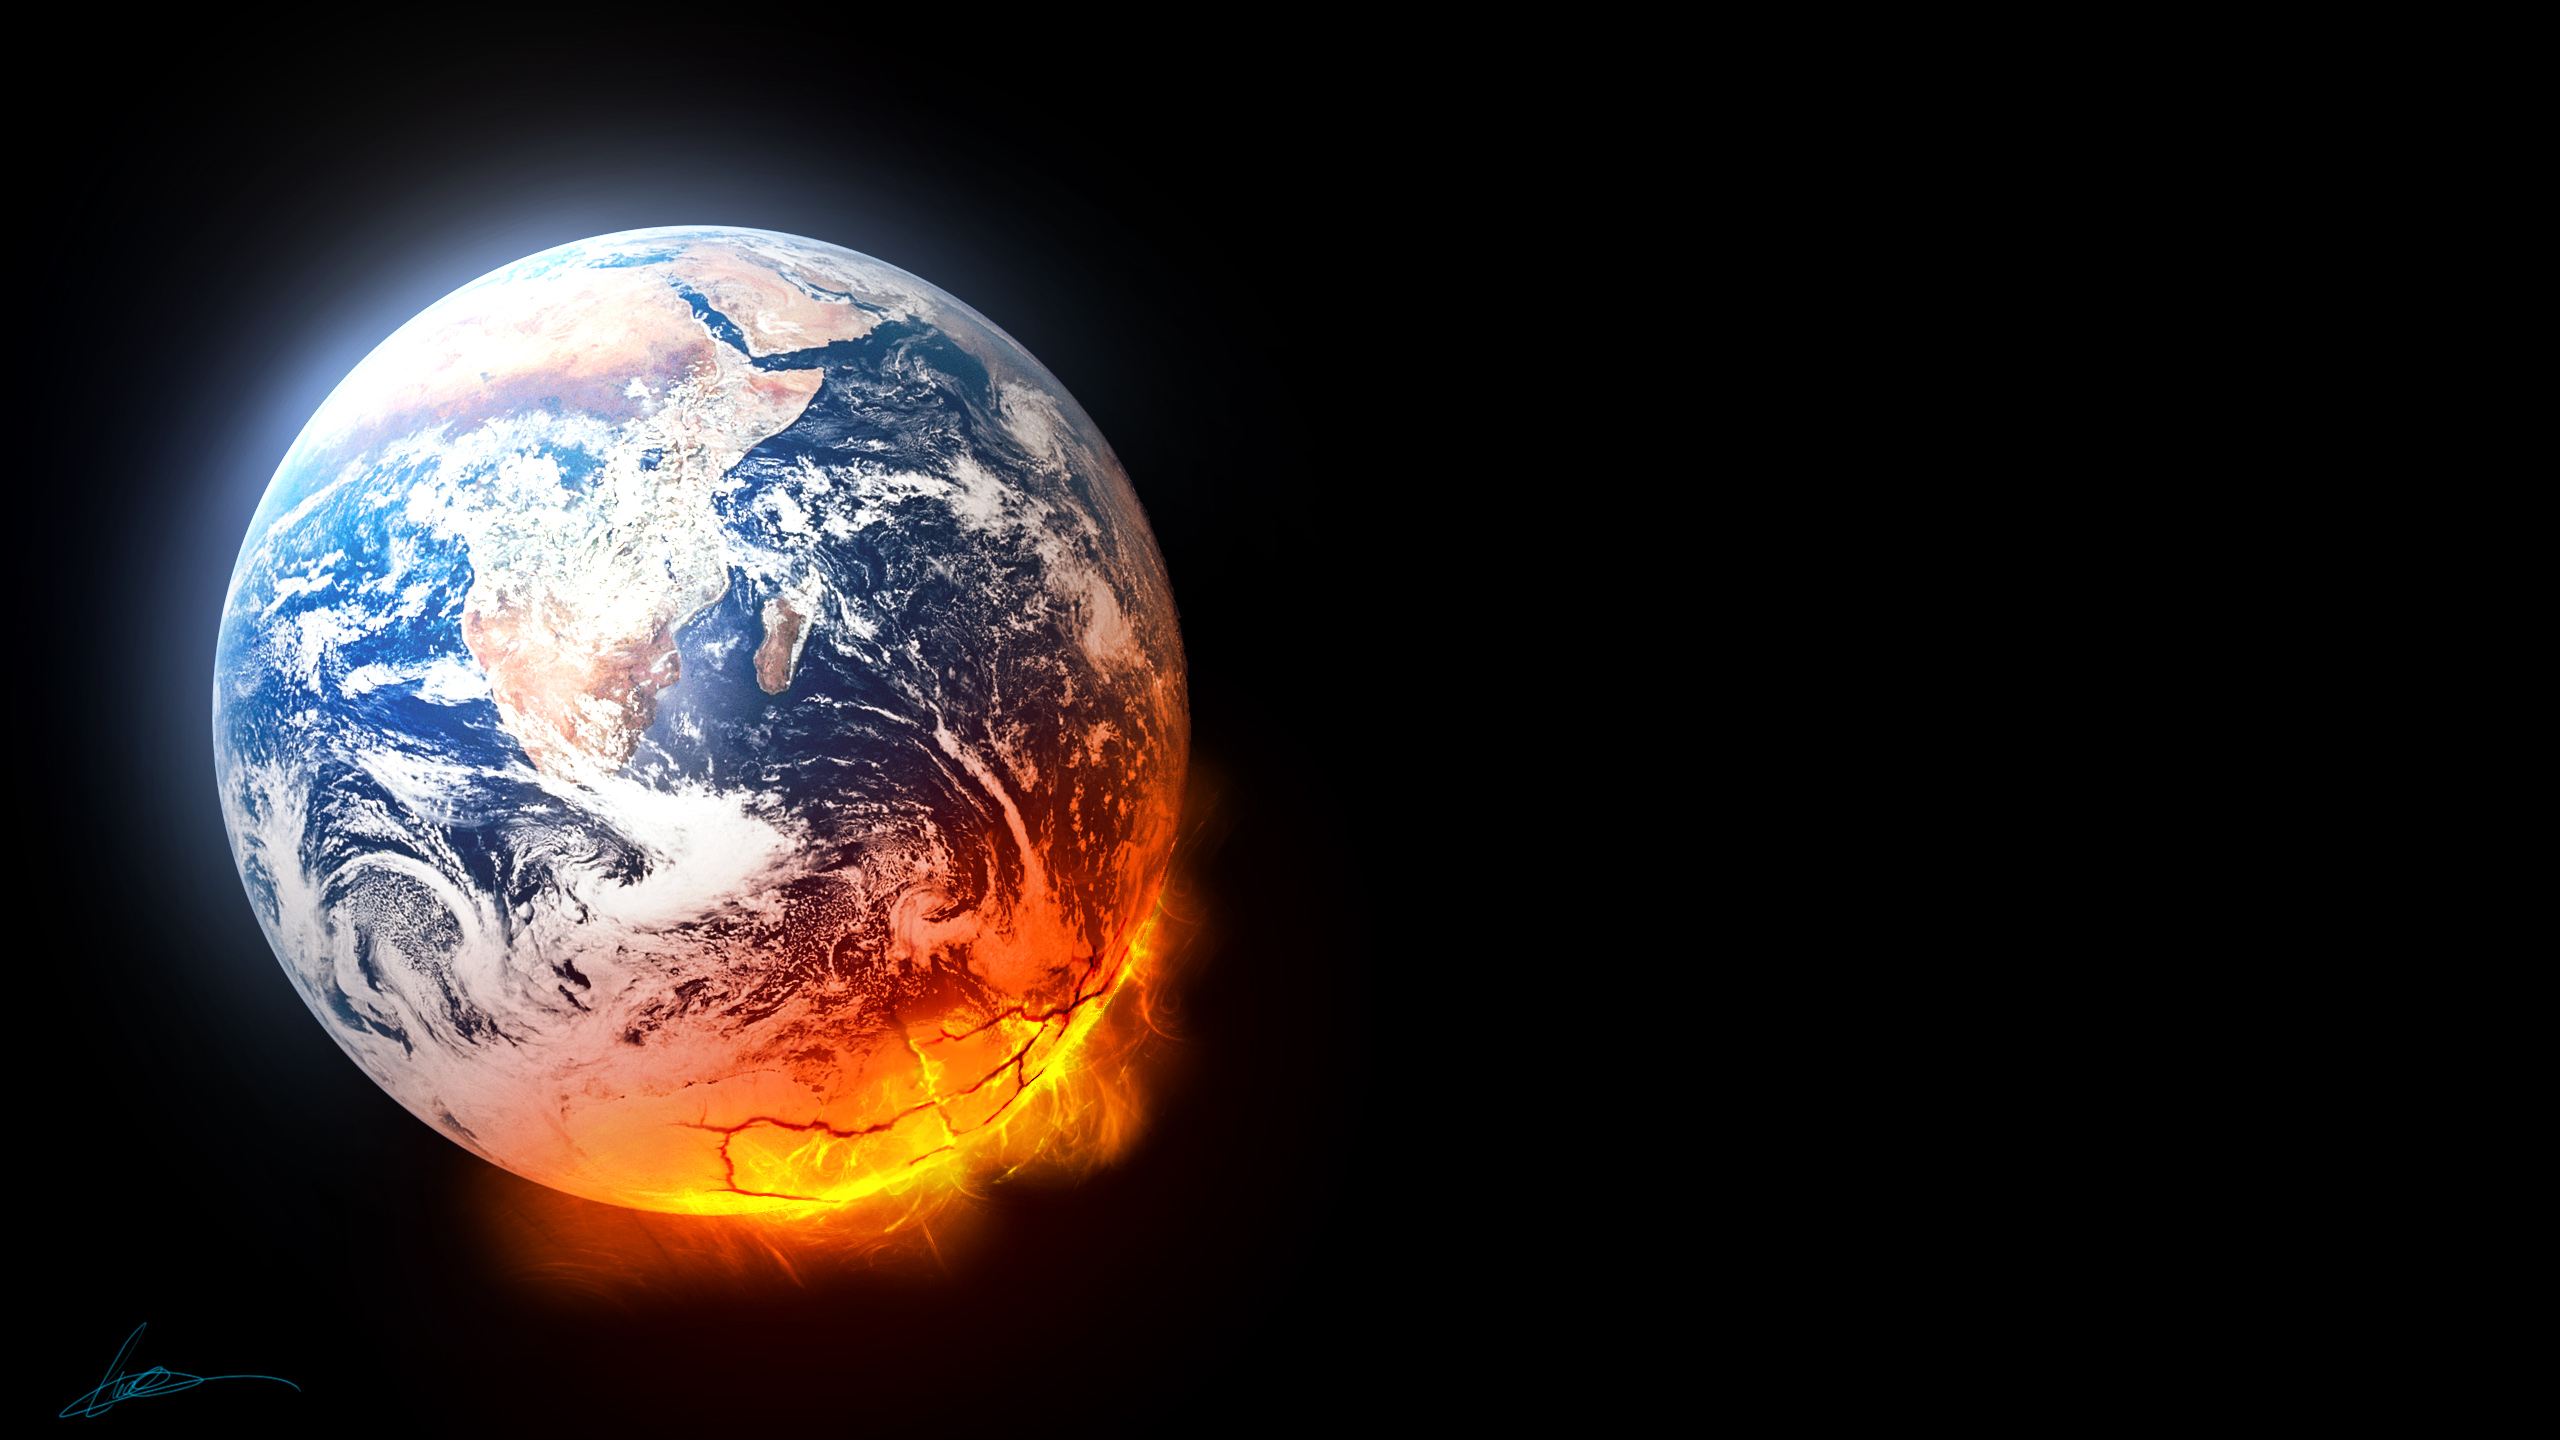 Pictures earth at night wallpaper earth at night desktop background 2560x1440